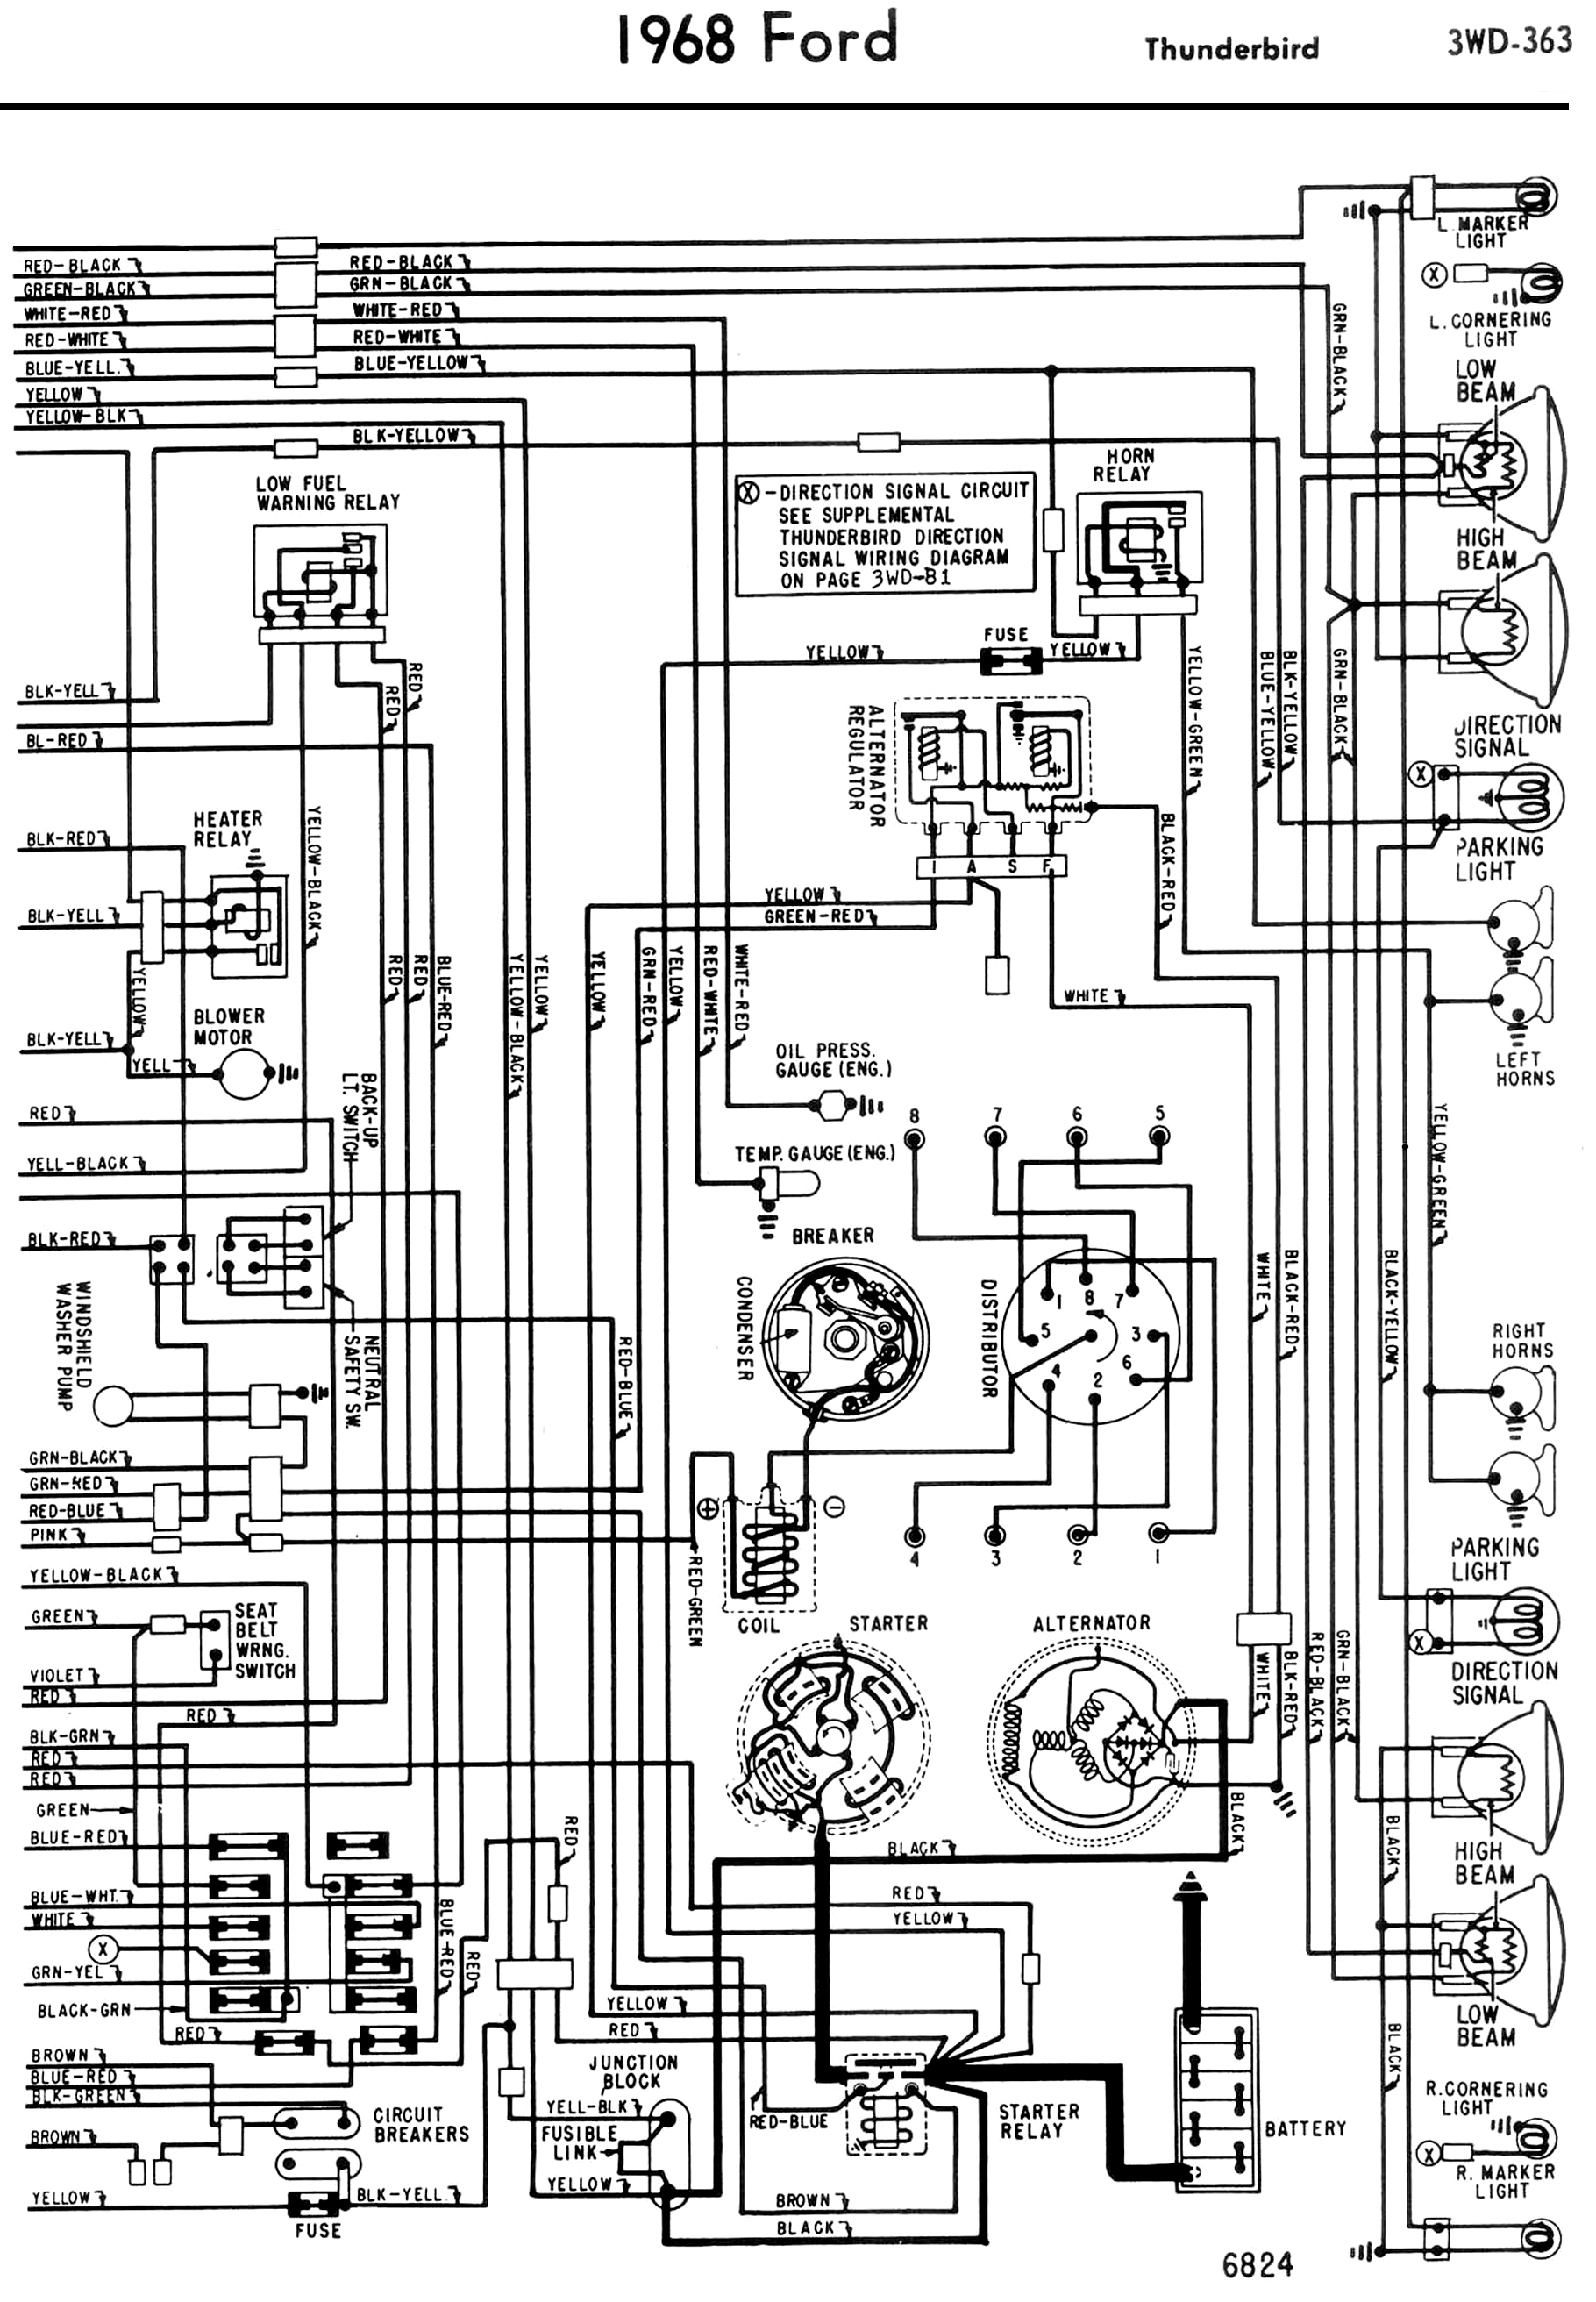 1965 Chevy Impala Wiring Diagram Free Download Ford Thunderbird Block Turn Signal Engine Image For User Manual 1995